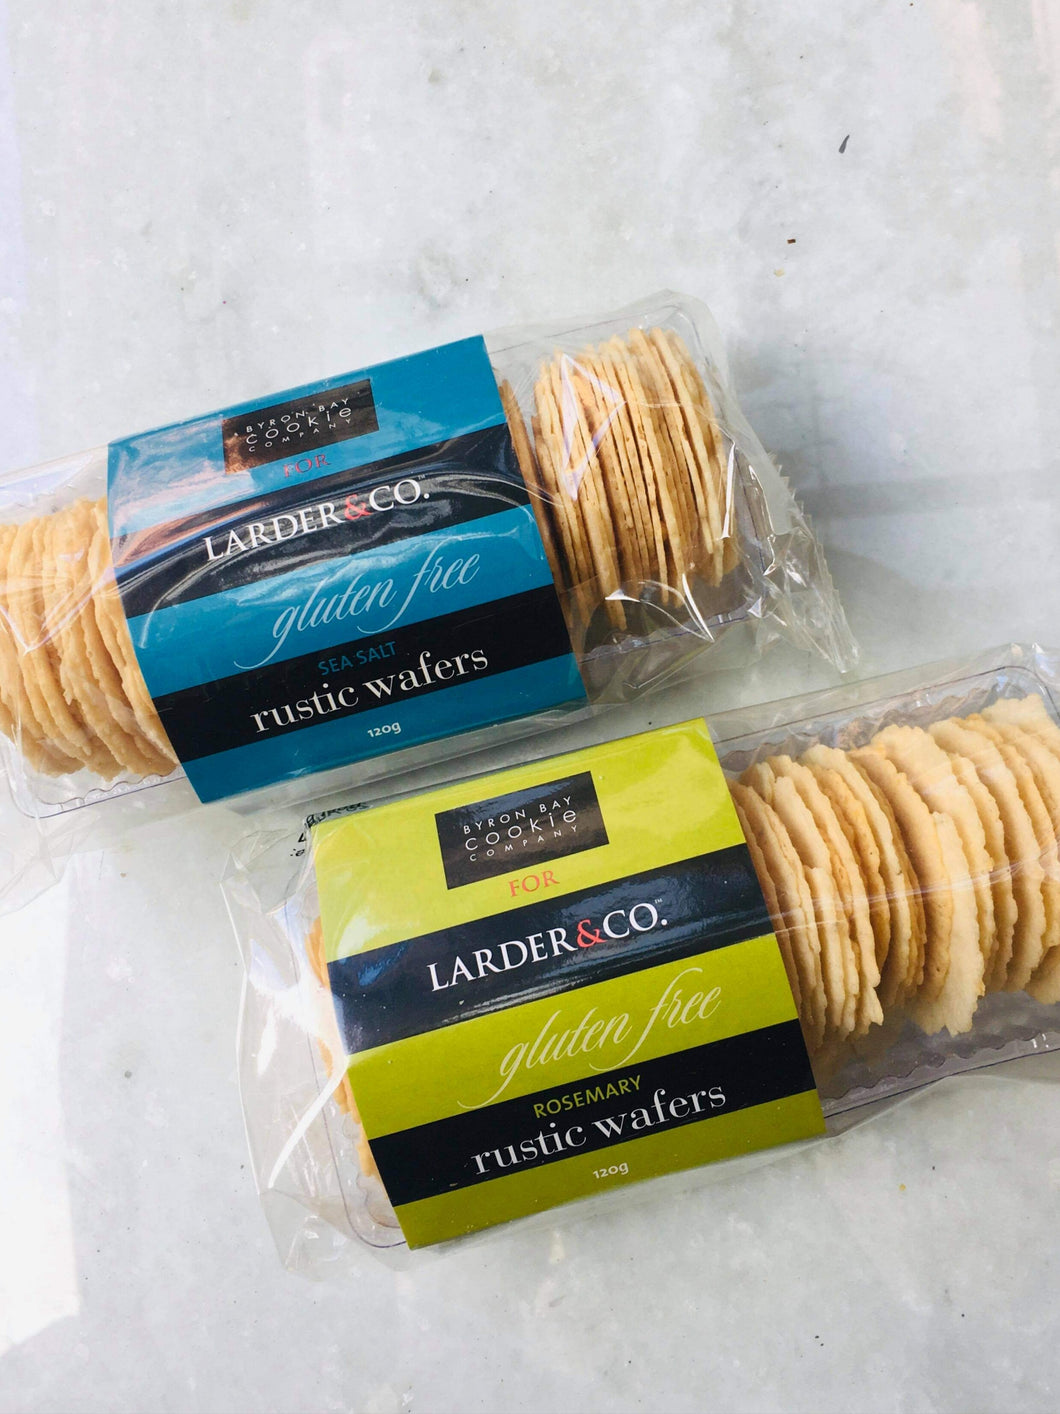 CRACKERS - Larder & Co Rustic Wafers - Sea Salt